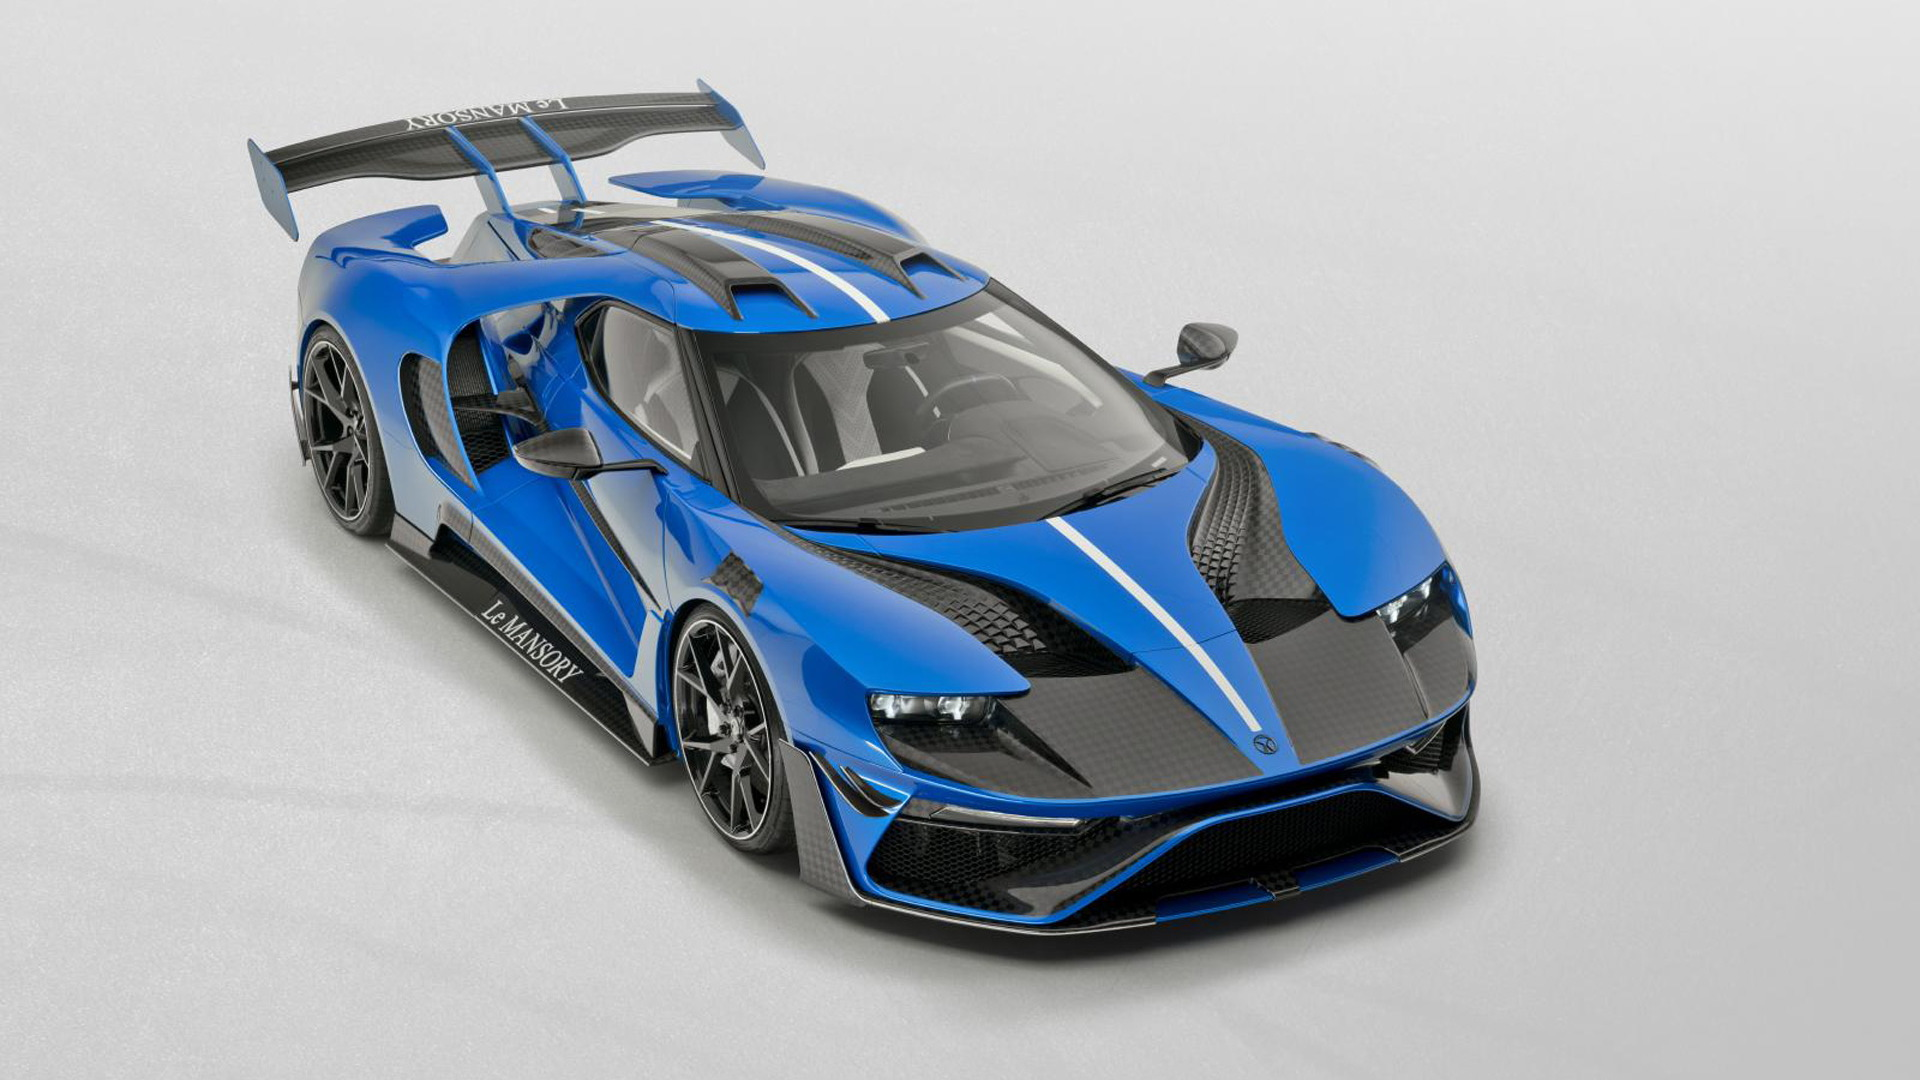 Mansory LeMansory based on the Ford GT